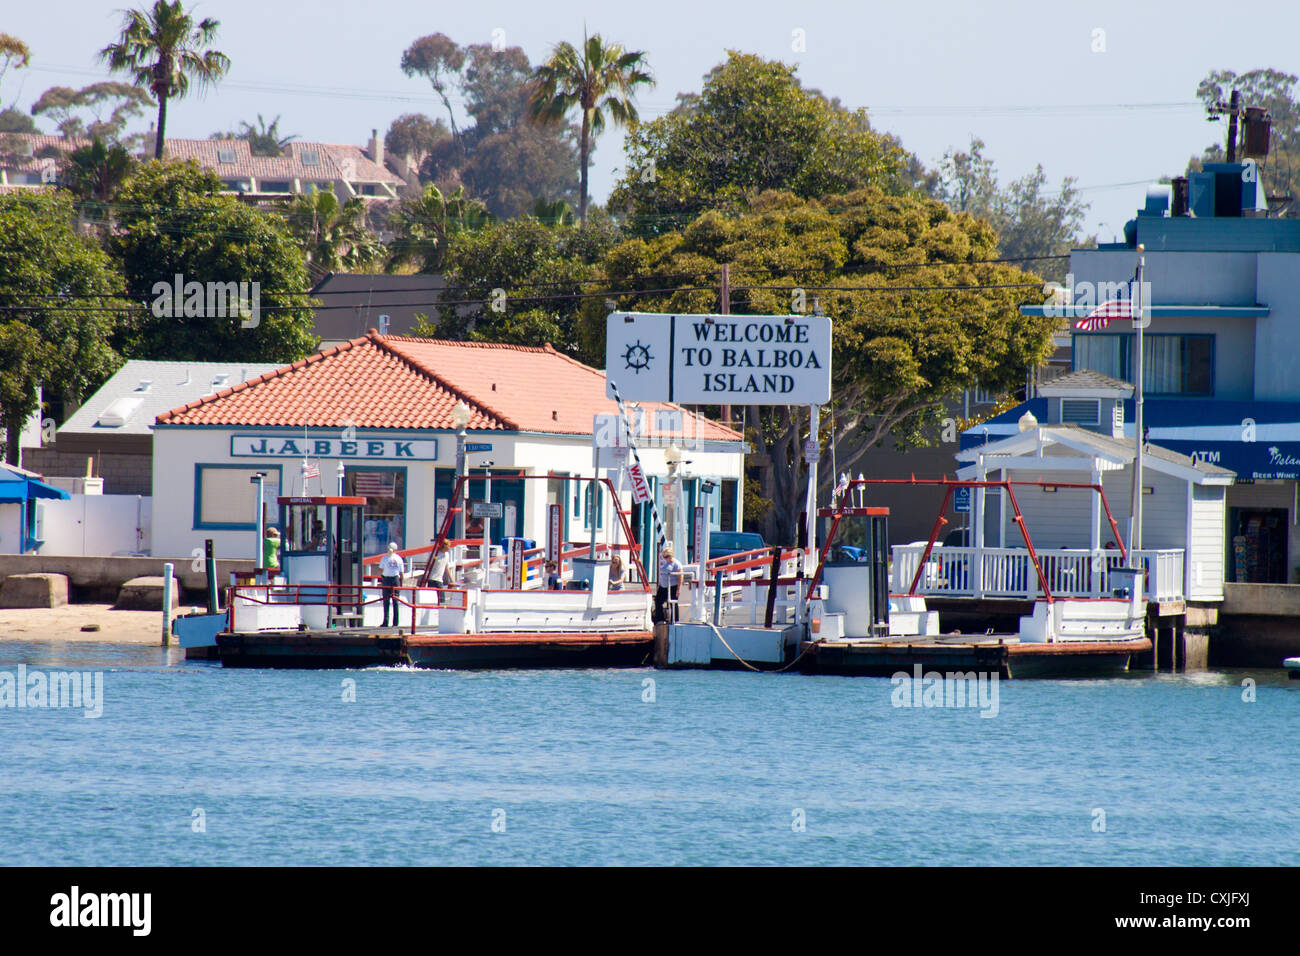 landing for balboa island car ferry balboa island california stock